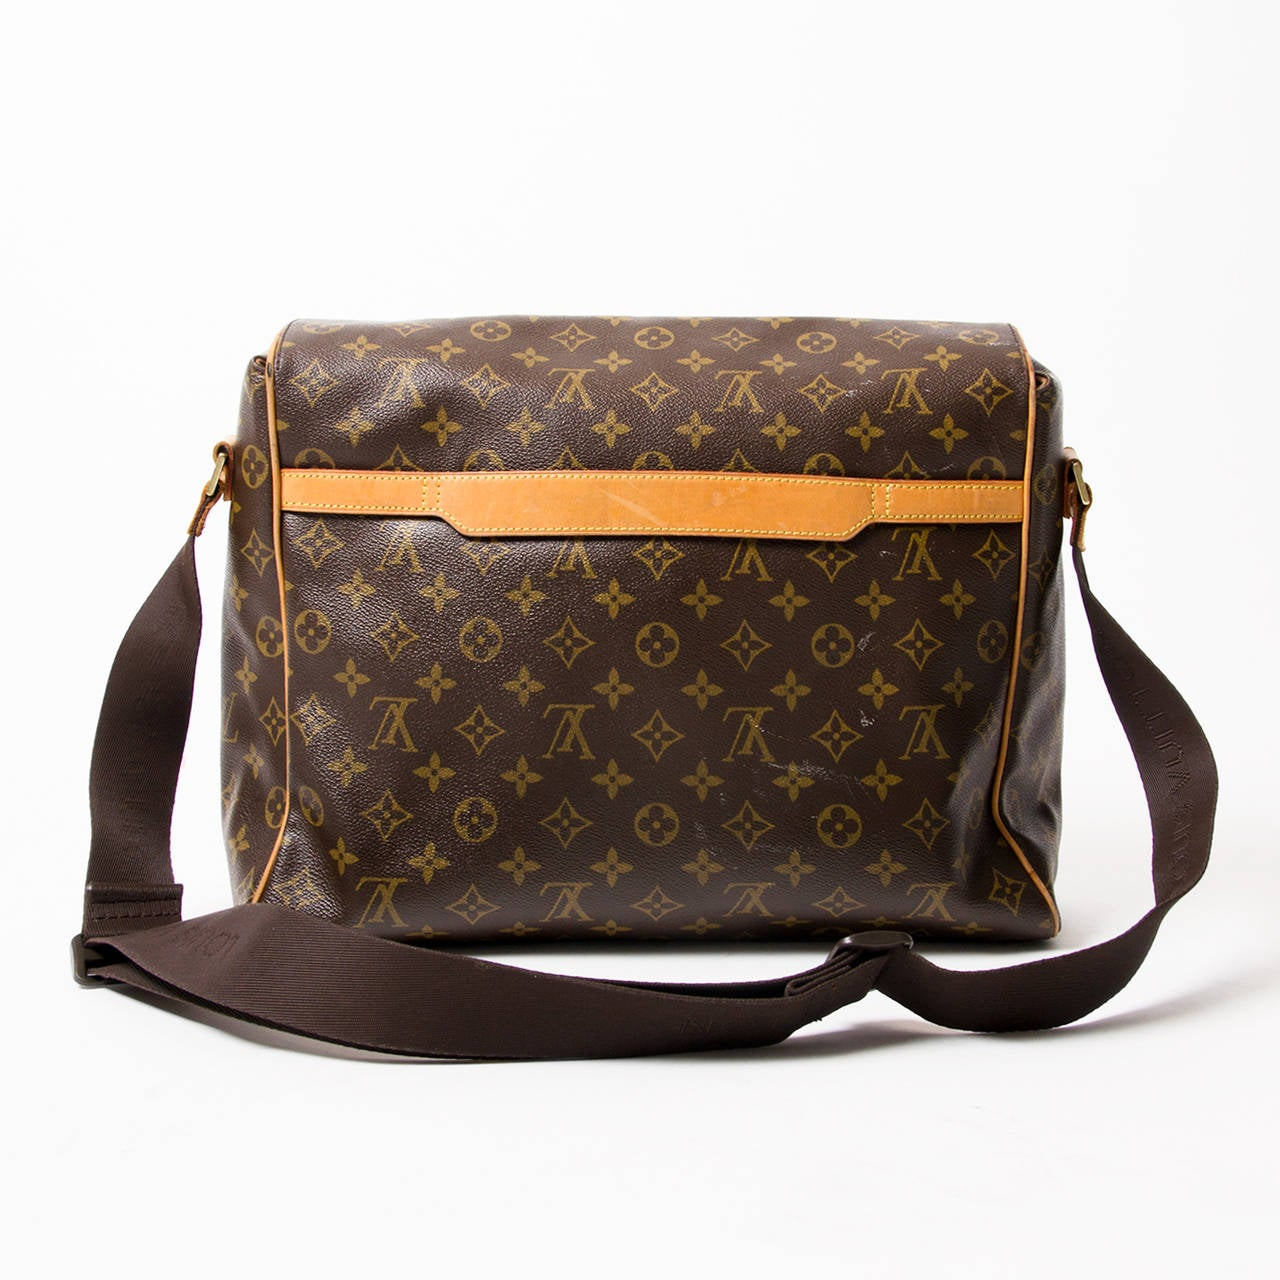 Louis vuitton abbesses messenger bag at 1stdibs for Louis vuitton miroir bags